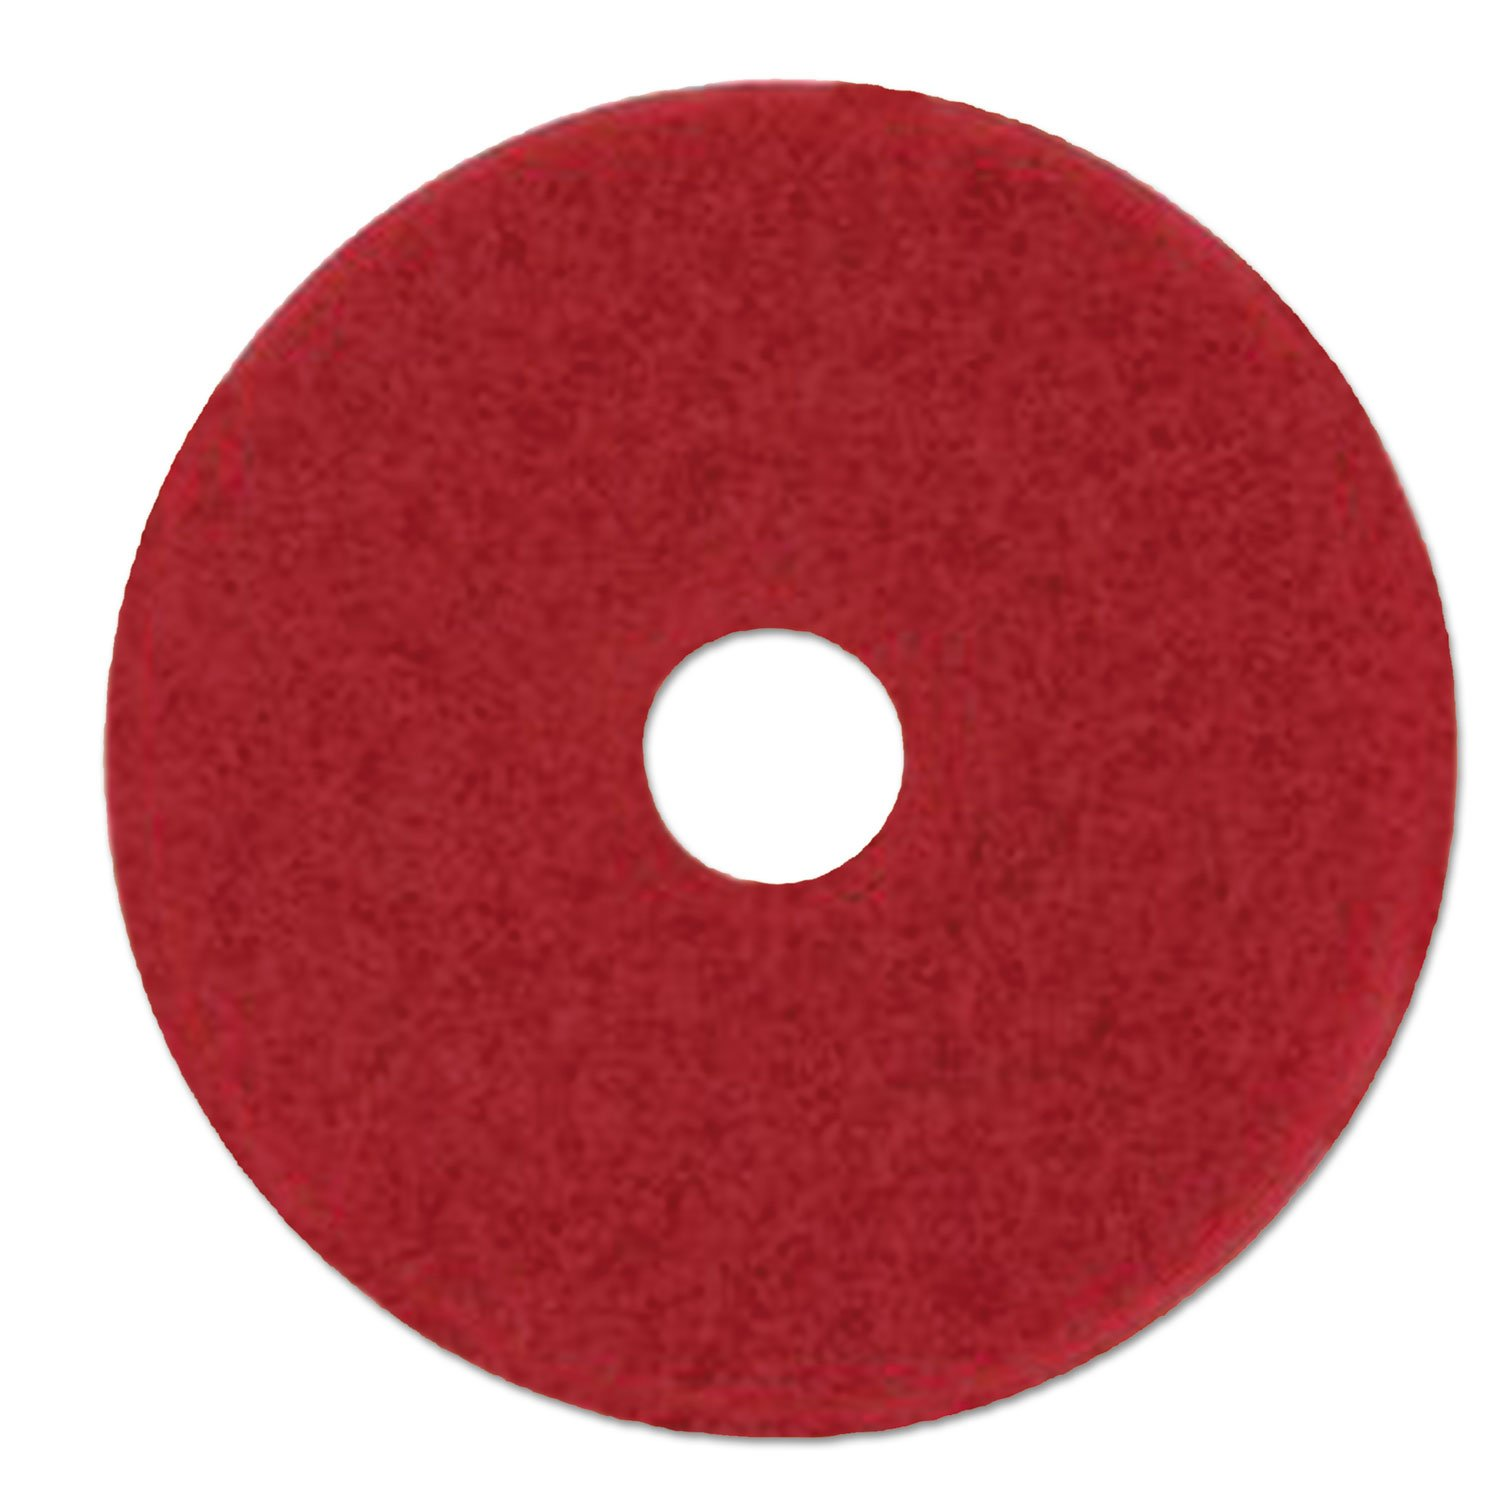 Low-Speed Buffer Floor Pads 5100, 28'' X 14'', Red, 10/carton by 3M